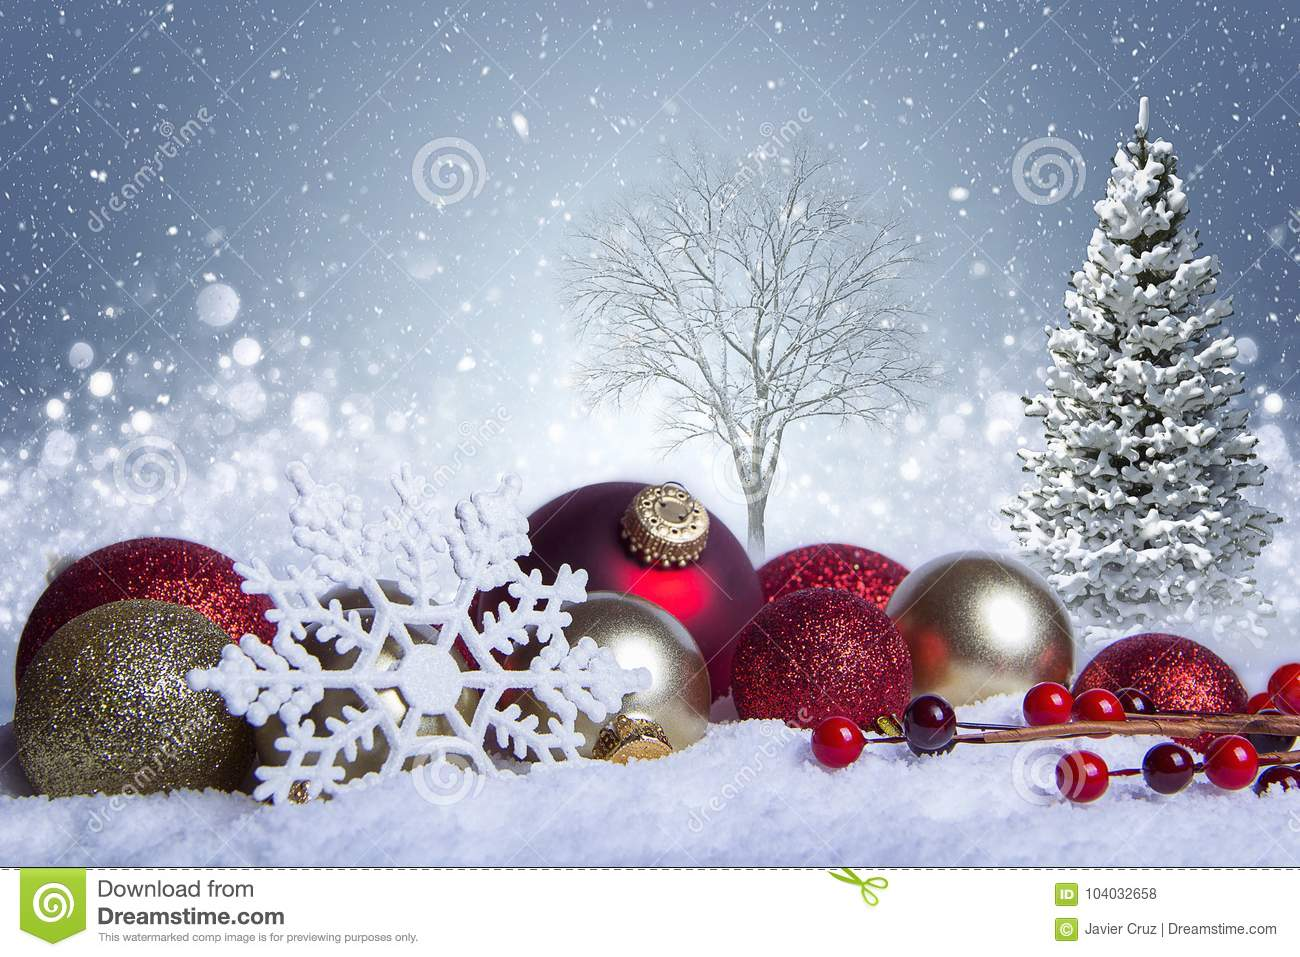 Christmas Scenes Images.White Christmas Scene Concept Stock Photo Image Of Xmas